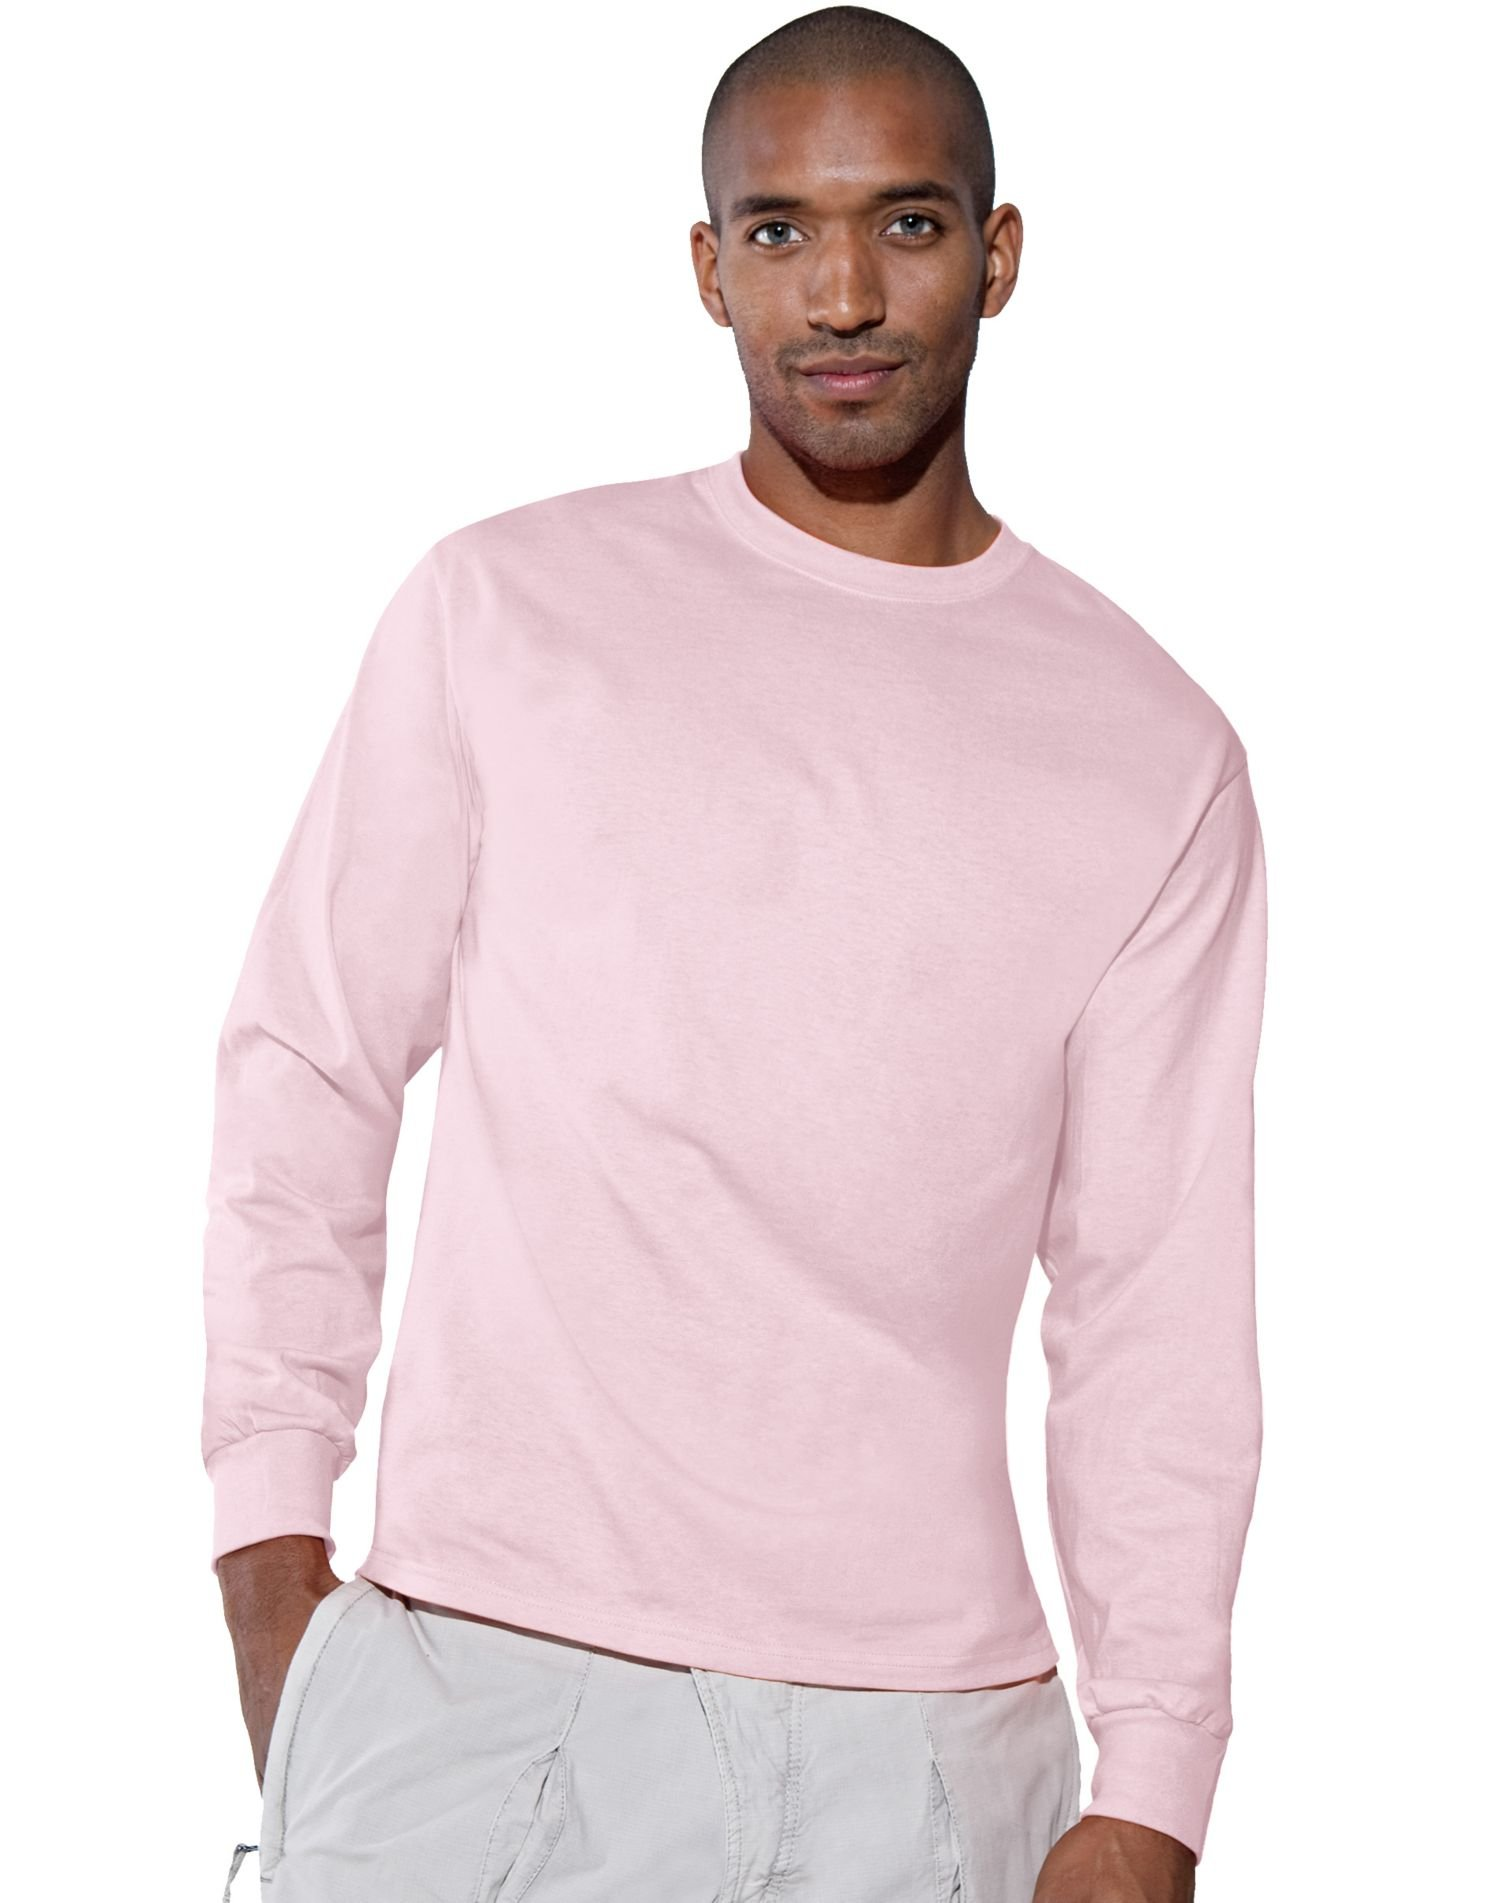 Hanes - Tagless 100% Cotton Long Sleeve T-Shirt. 5586 (Pale Pink) (Small)